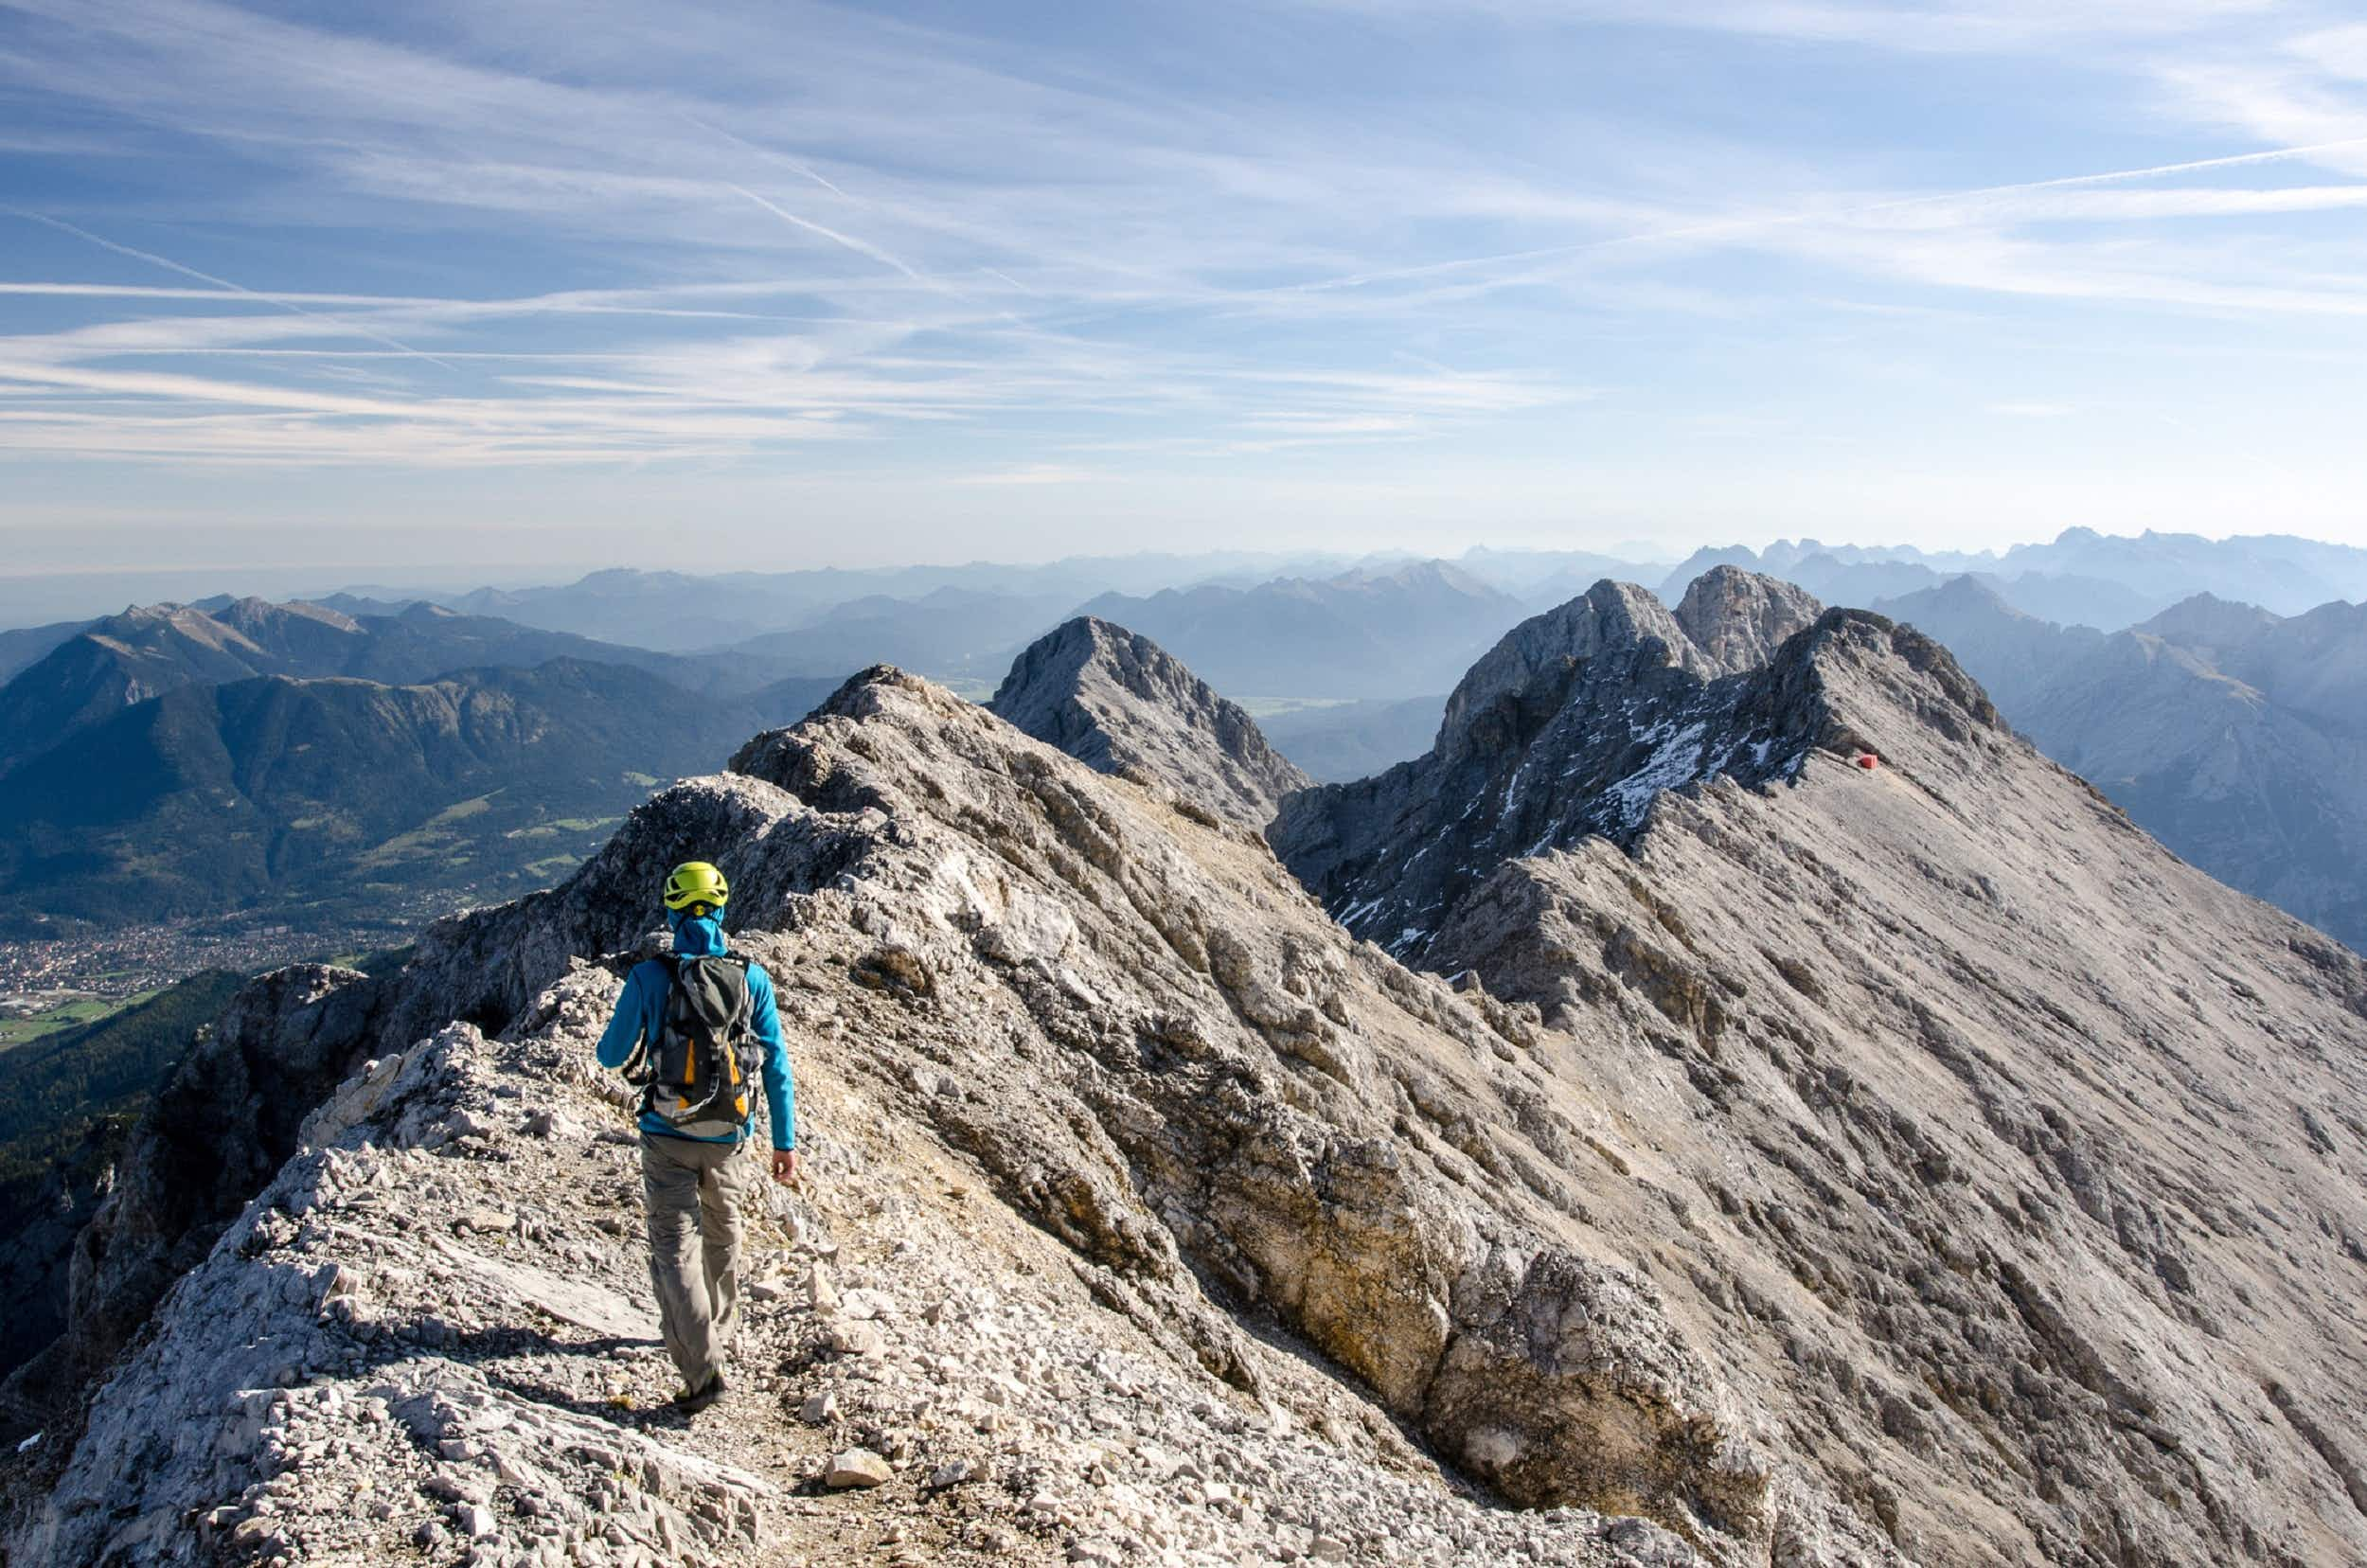 The mountains of Garmisch-Partenkirchen offer rich pickings for hikers, skiers and rock climbers © Simon Koeppl / EyeEm / Getty Images